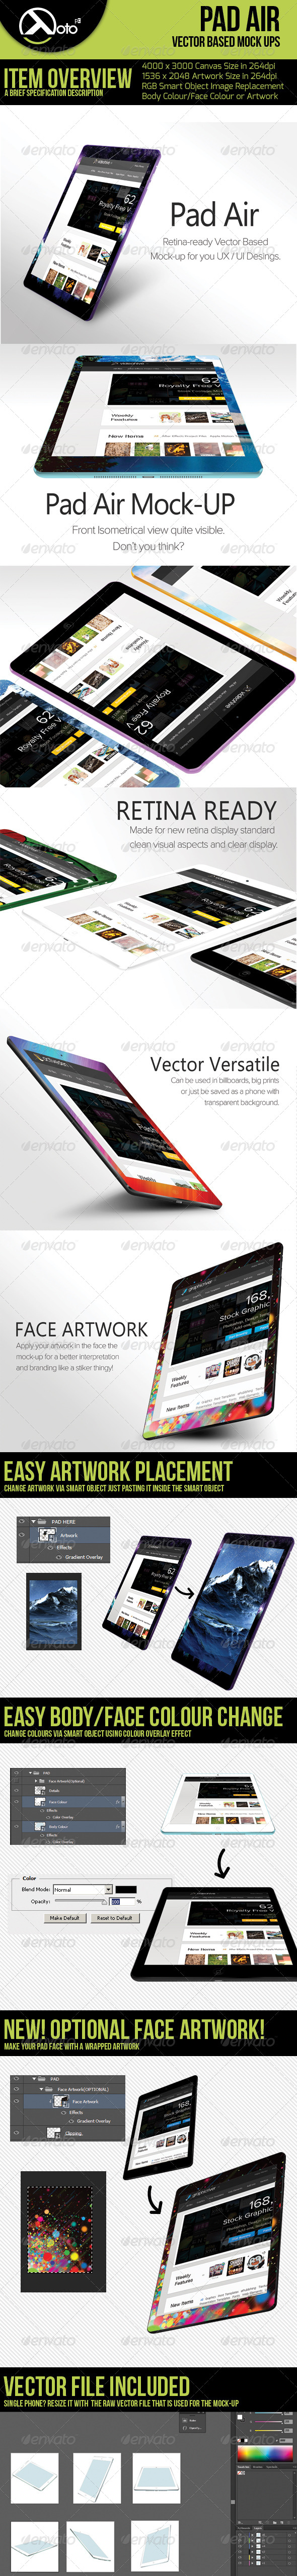 GraphicRiver Pad Air Vector Based Mock-up 6083269